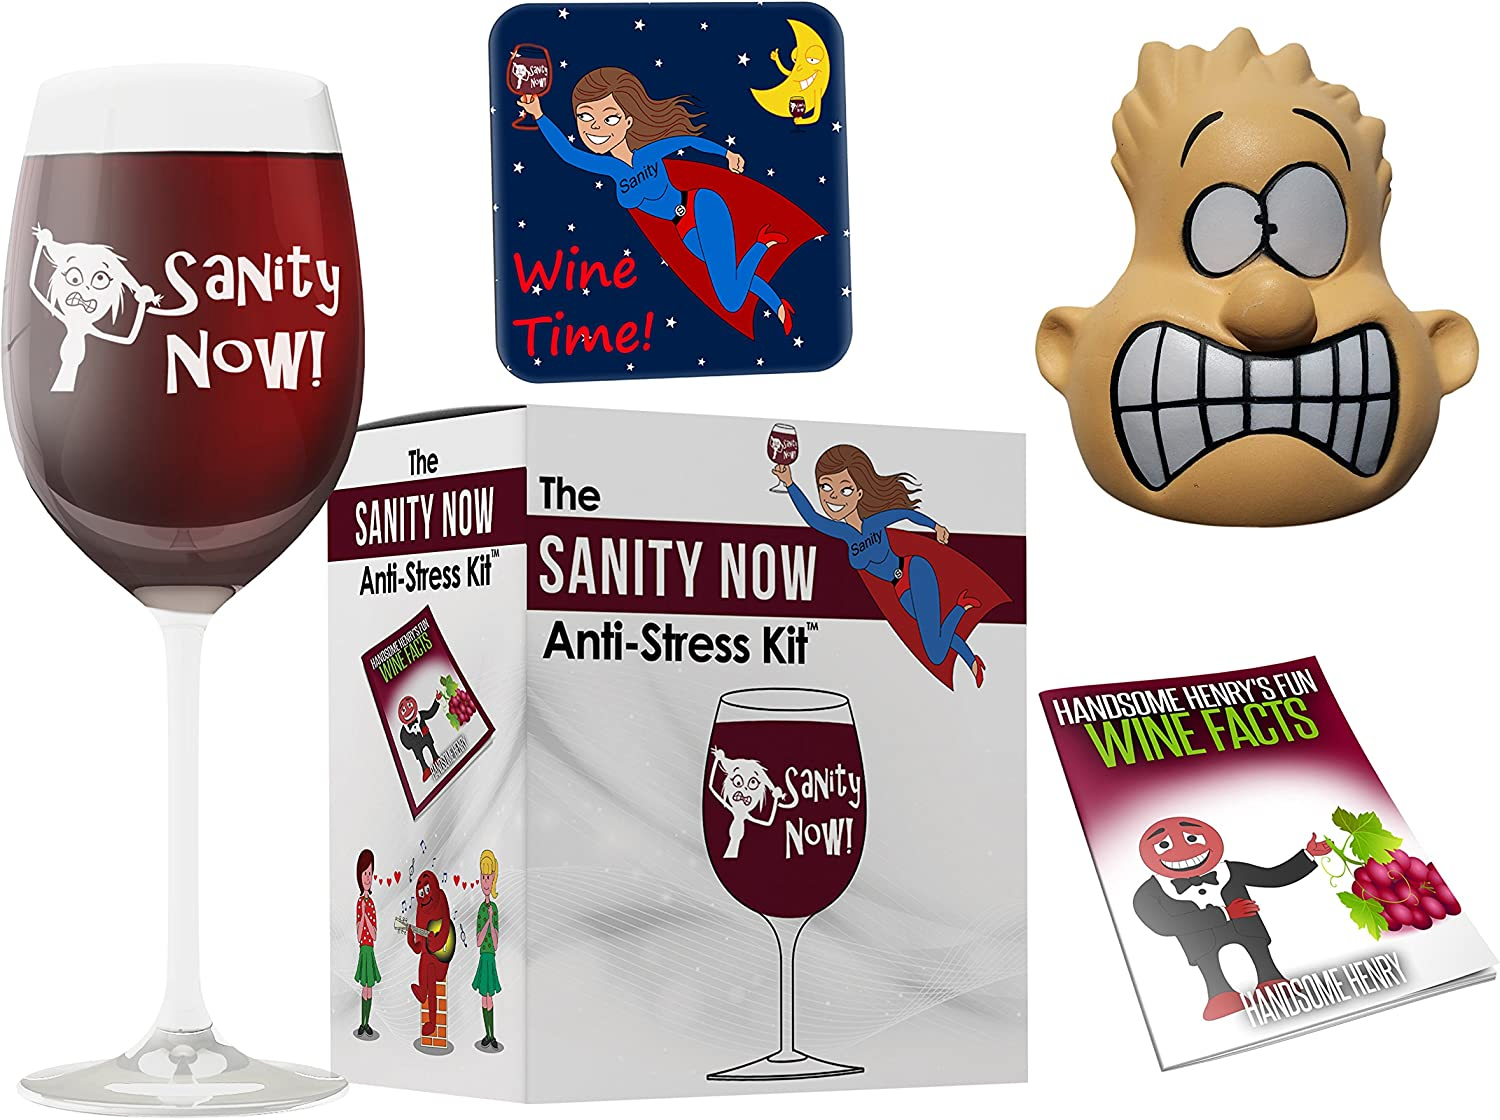 Ranking integrated 1st Outlet SALE place Wine Lover's Funny Gift - Sanity G Fun Now Kit. Anti-Stress